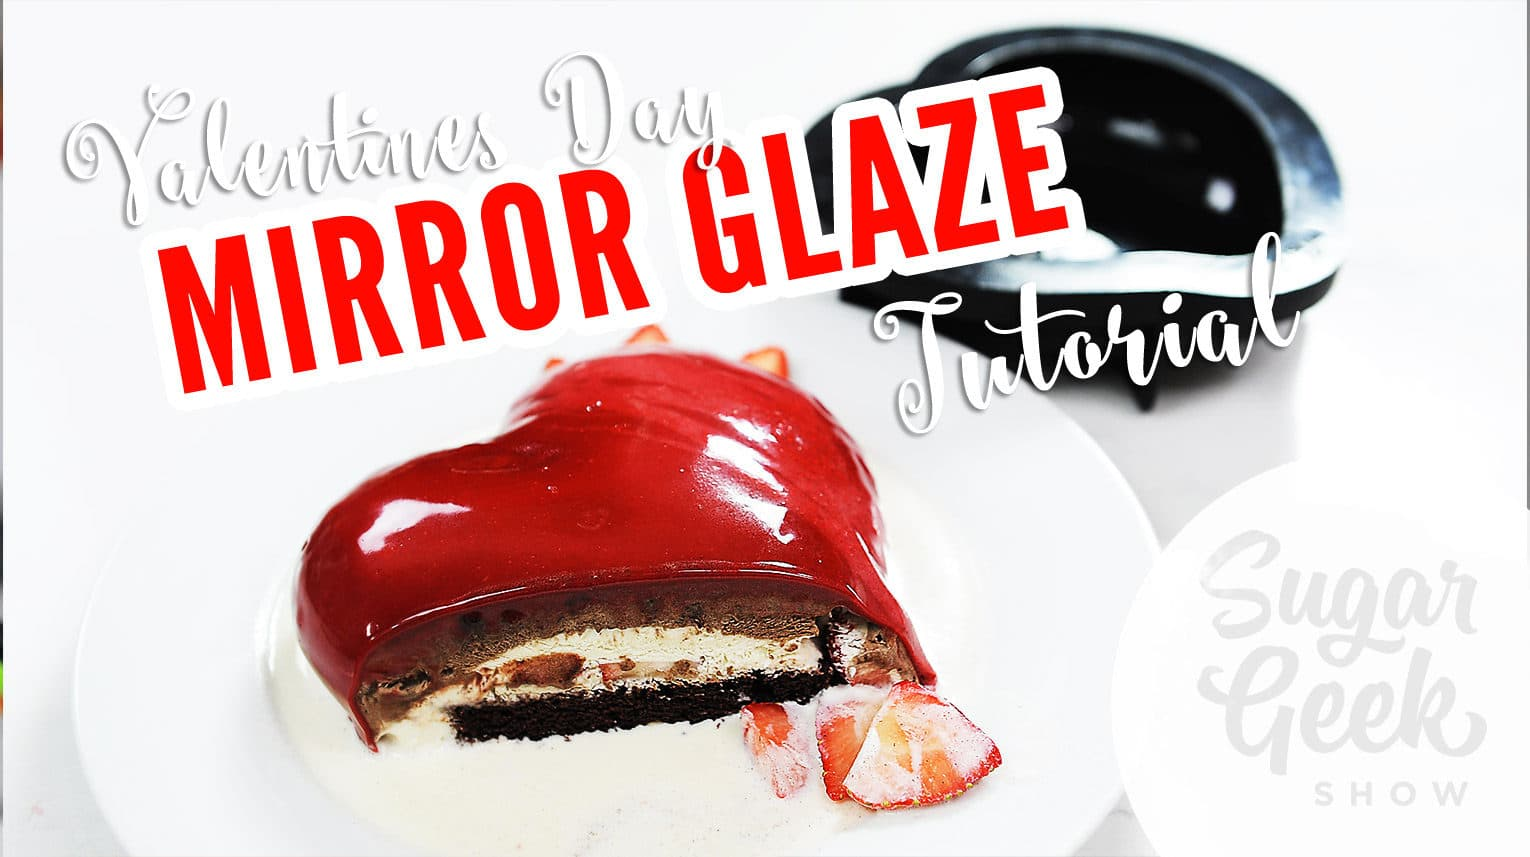 Learn how to make this mirror glaze heart cake, just in time for Valentine's Day! This delicious dessert packed with strawberries, candy bar bits, and a special Guinness beer cake is the perfect decadent candy for him or her this holiday. Learn the step-by-step instructions easily with Liz Marek as she works live (previously-recorded). Click through for full tutorial srcset=